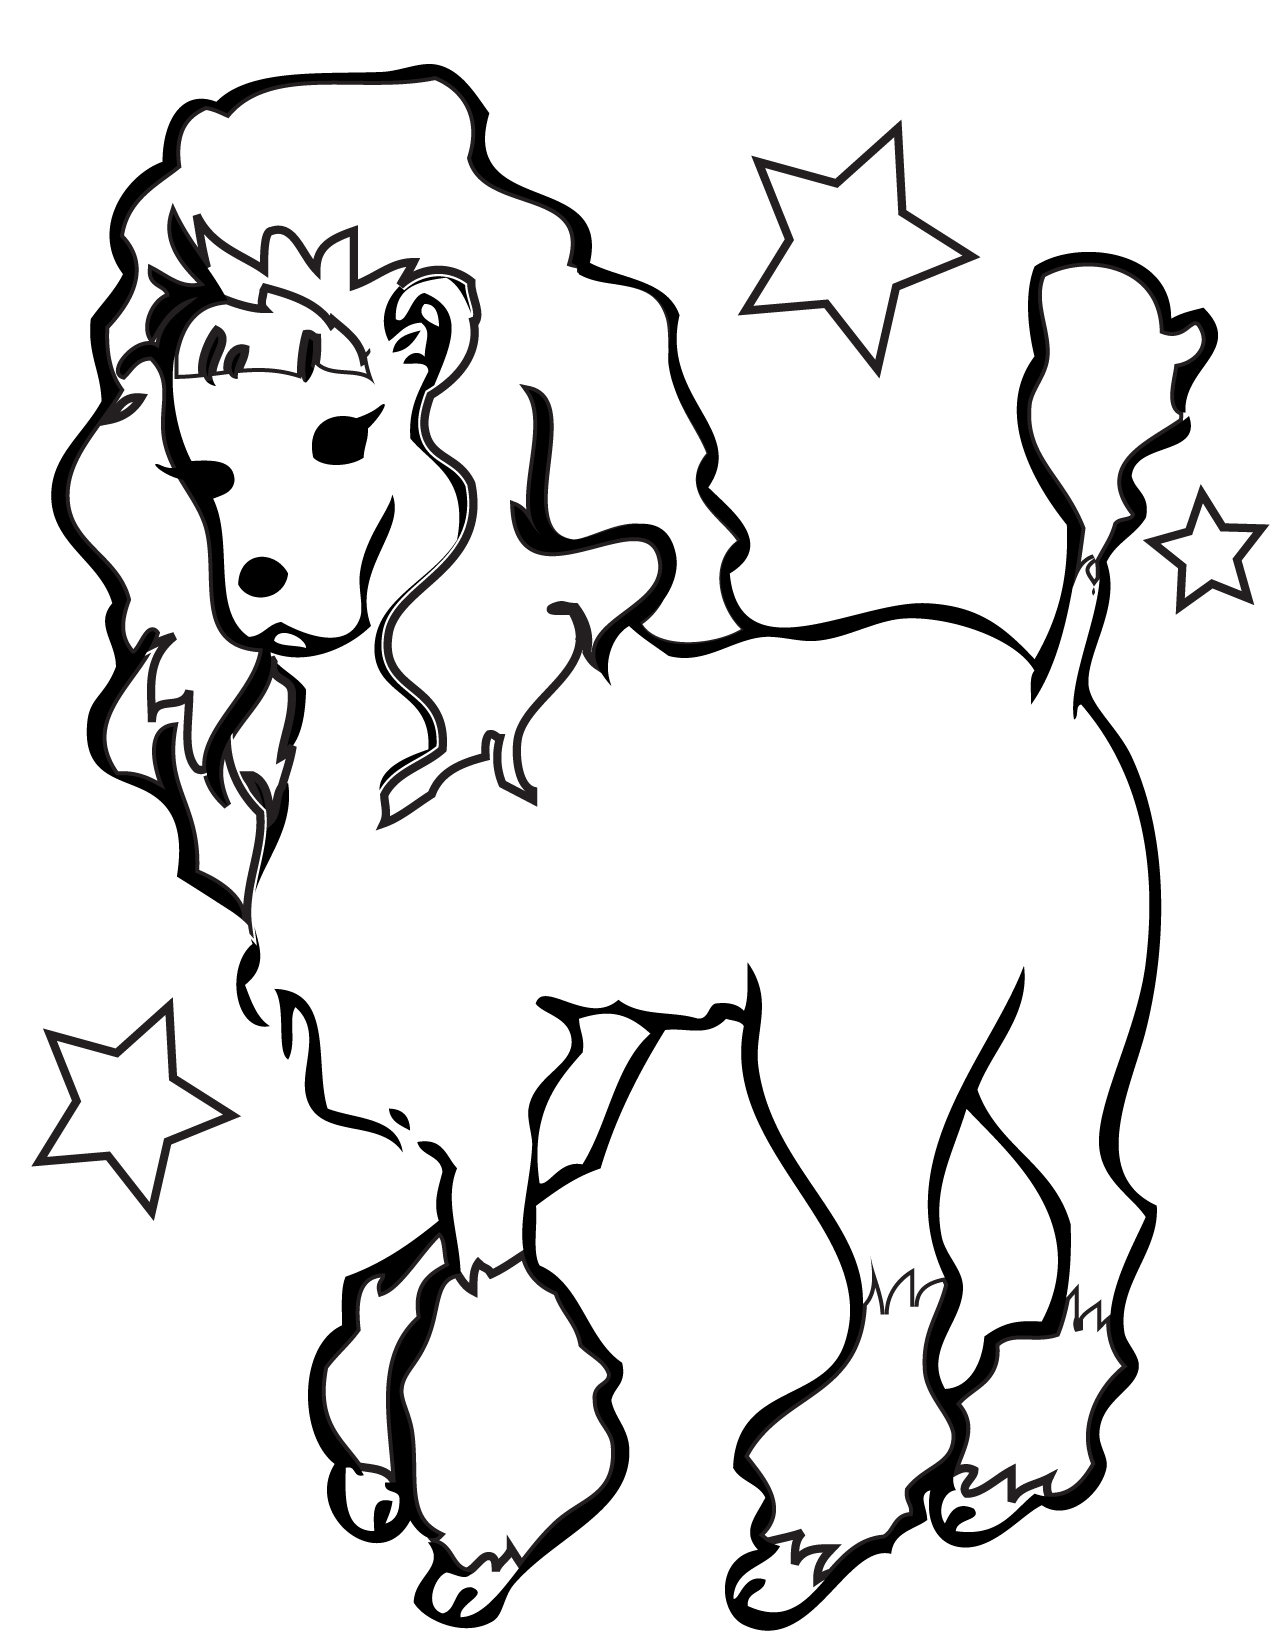 Puppy coloring pages online - Dog Coloring Page Printable Free Pages Puppies